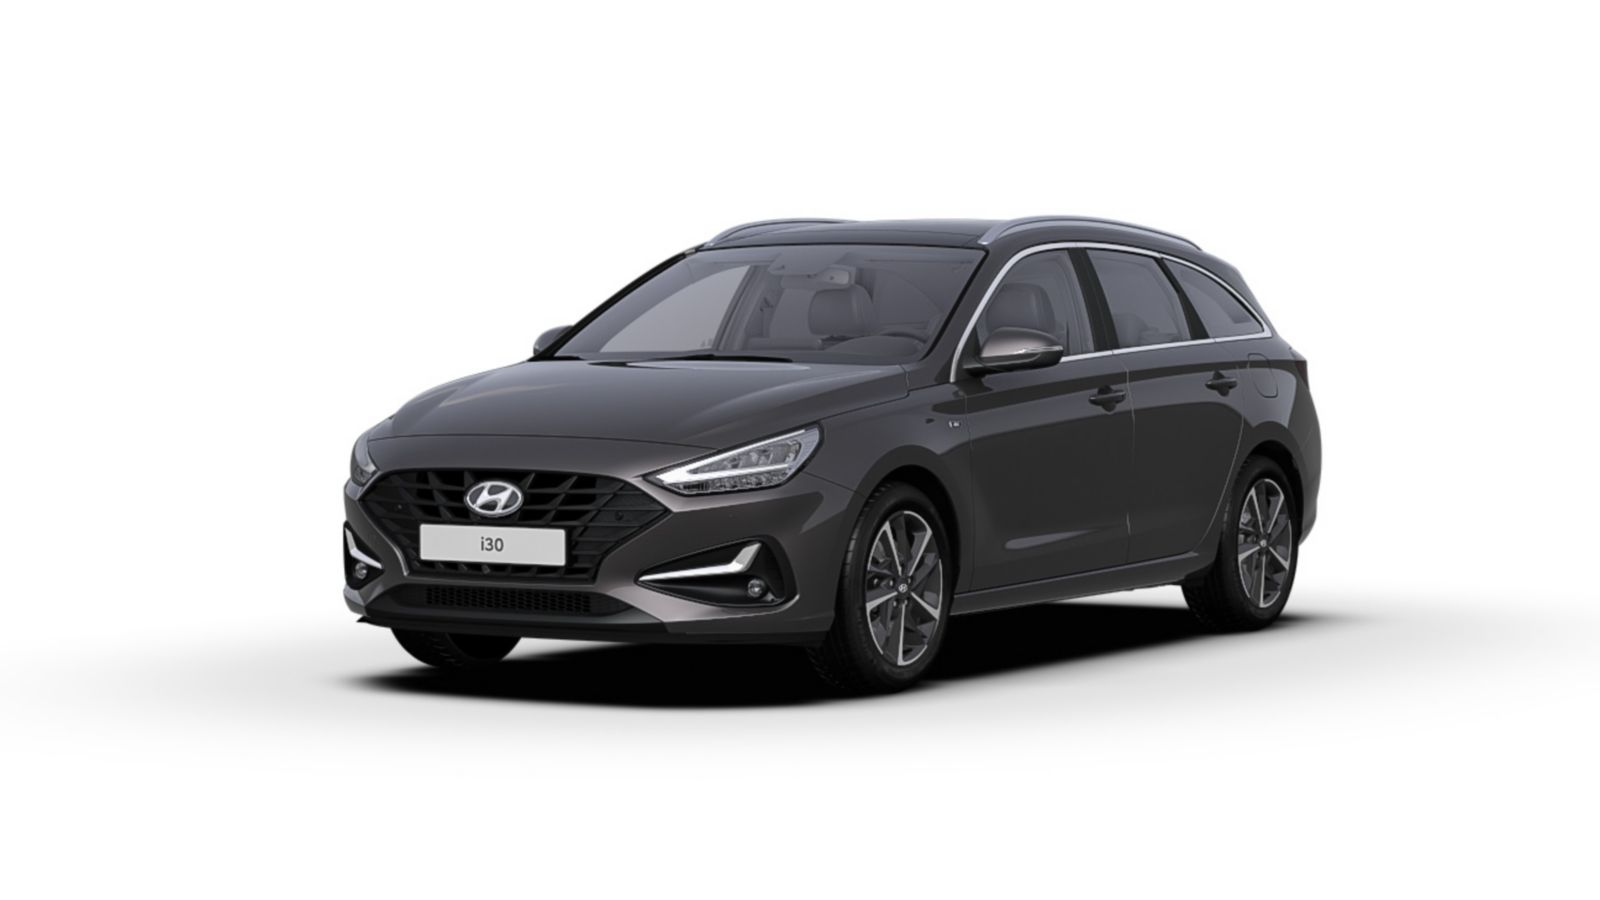 Front side view of the new Hyundai i30 Wagon in the colour Dark Knight.